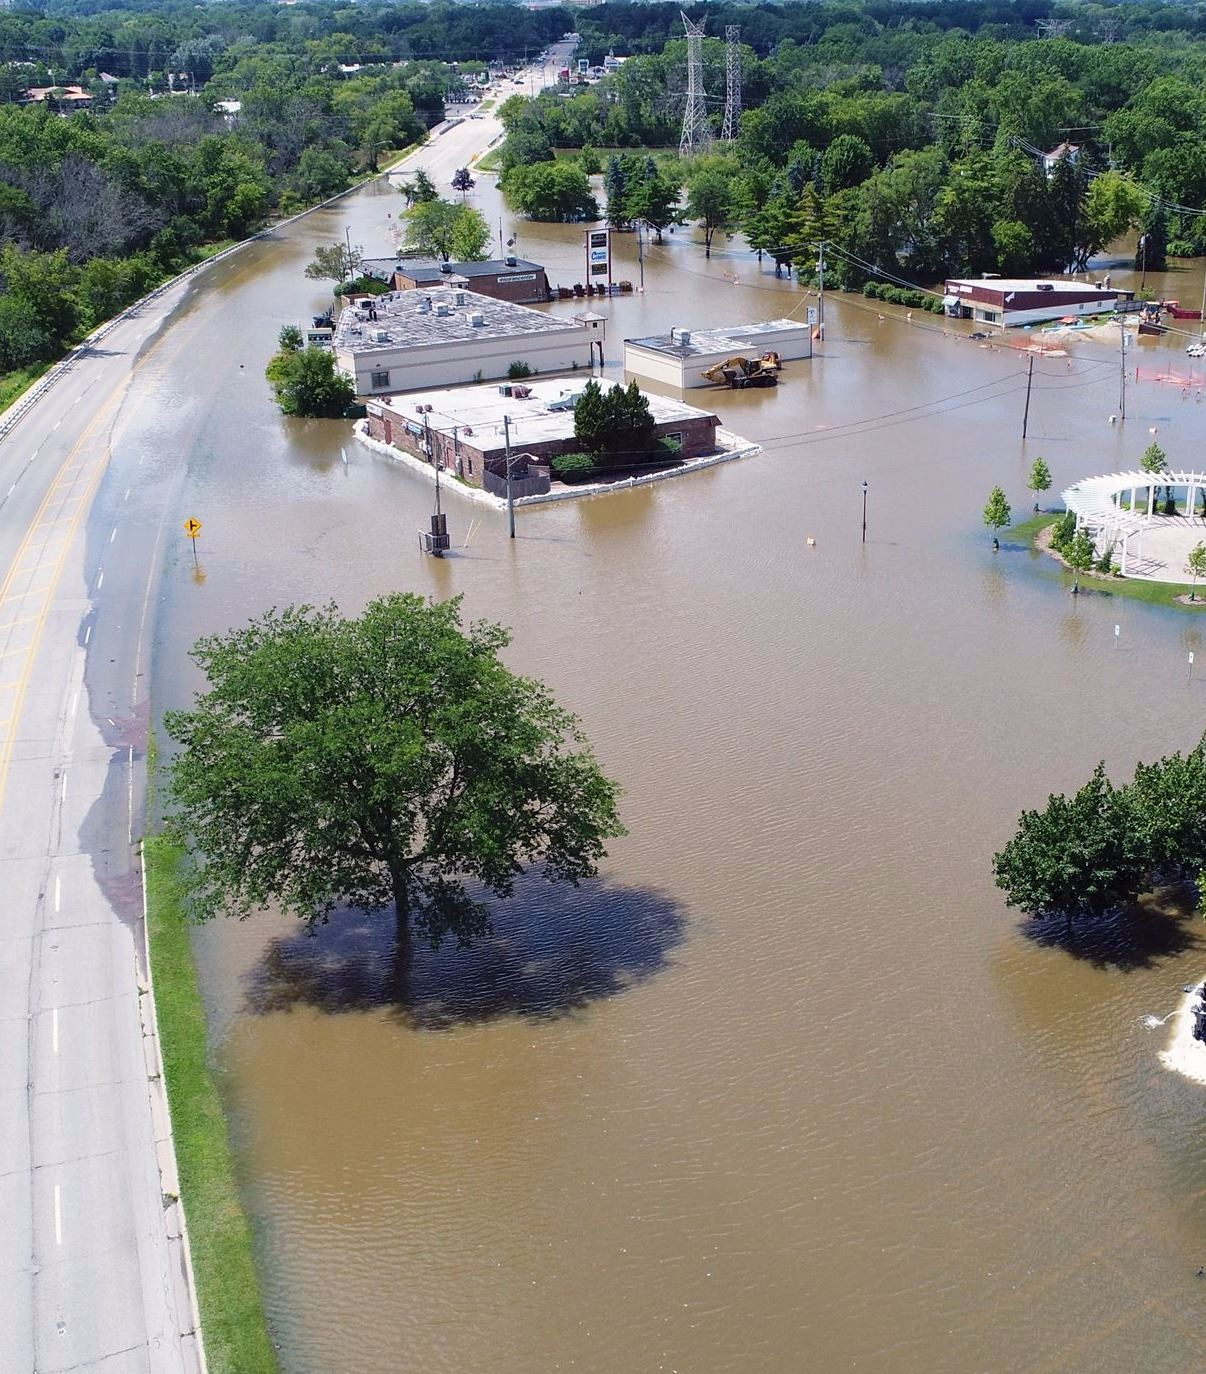 Flood Information | Lake County, IL on illinois township map, illinois storms, illinois roads, illinois water maps, illinois climate, illinois wetland maps, illinois gravity maps, illinois groundwater maps, illinois gas, illinois flooding, illinois school districts, illinois stream maps, michigan floodplain maps, topographic maps, illinois weather maps, illinois river barge, illinois plat maps, illinois aquifer maps,